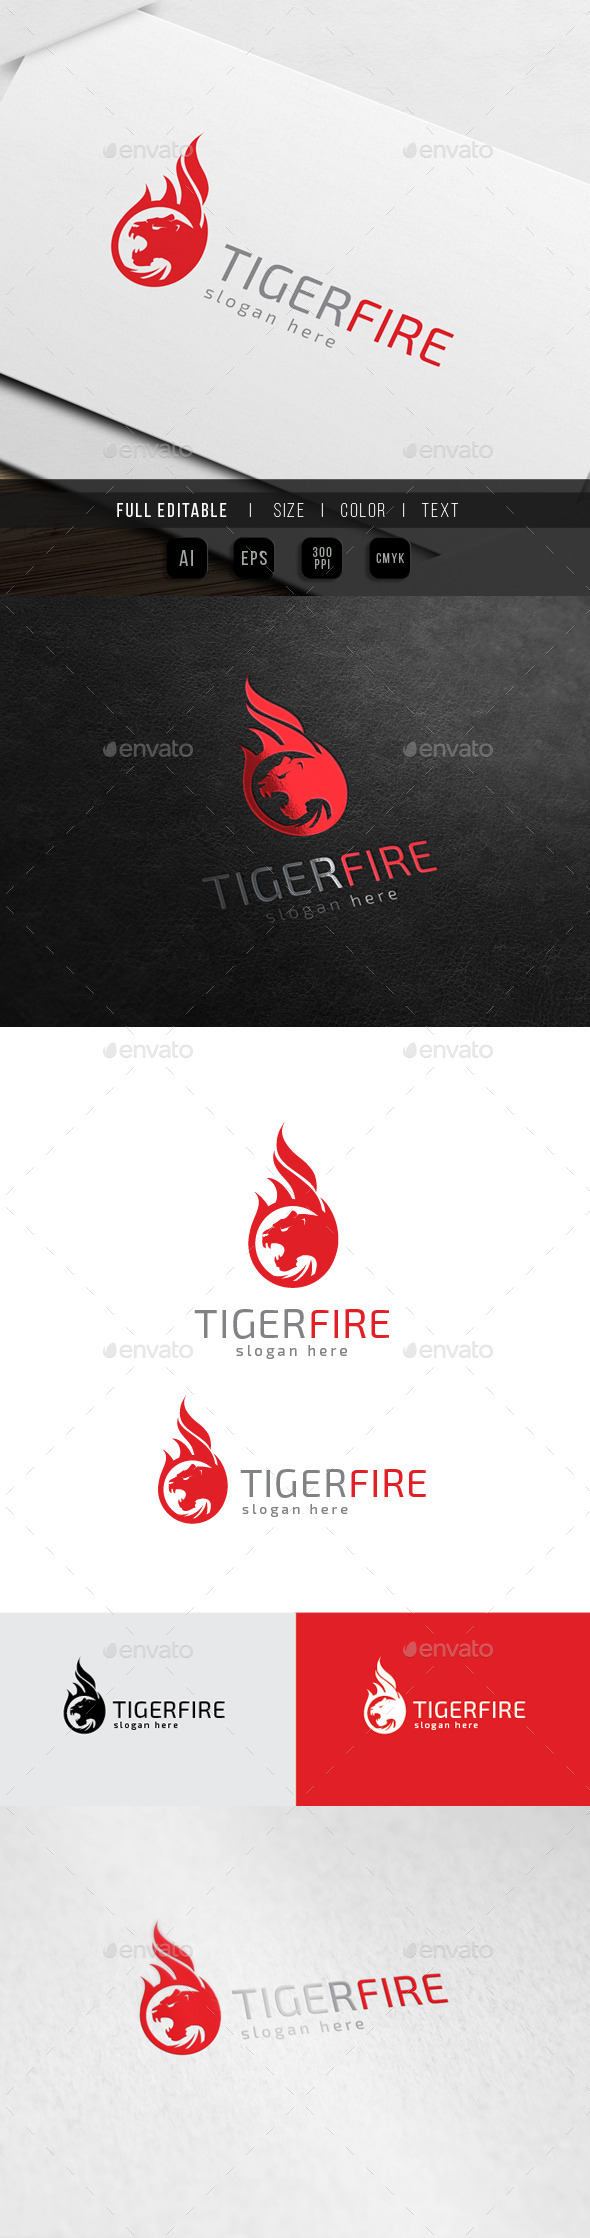 Tiger Fire - Panther Flame